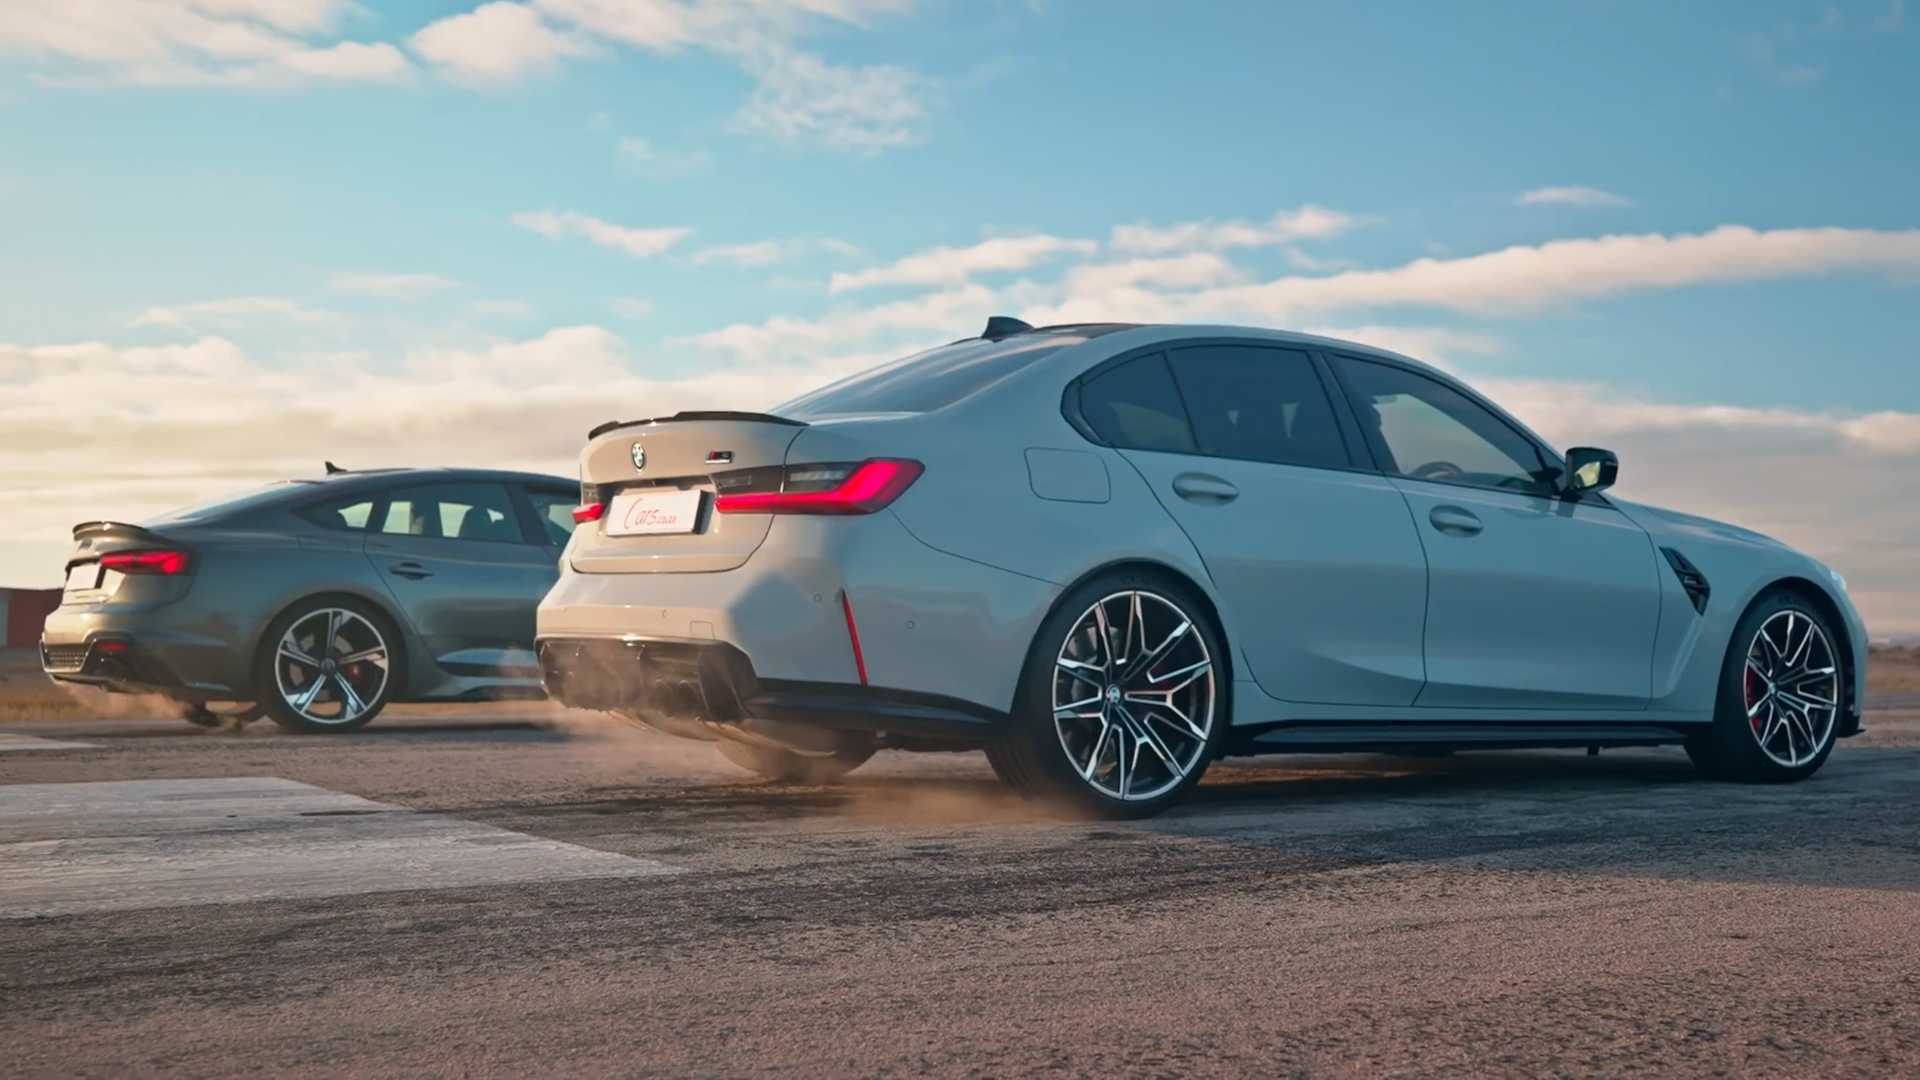 Audi RS5 Vs BMW M3 Drag Race Shows The Importance Of AWD - Motor1